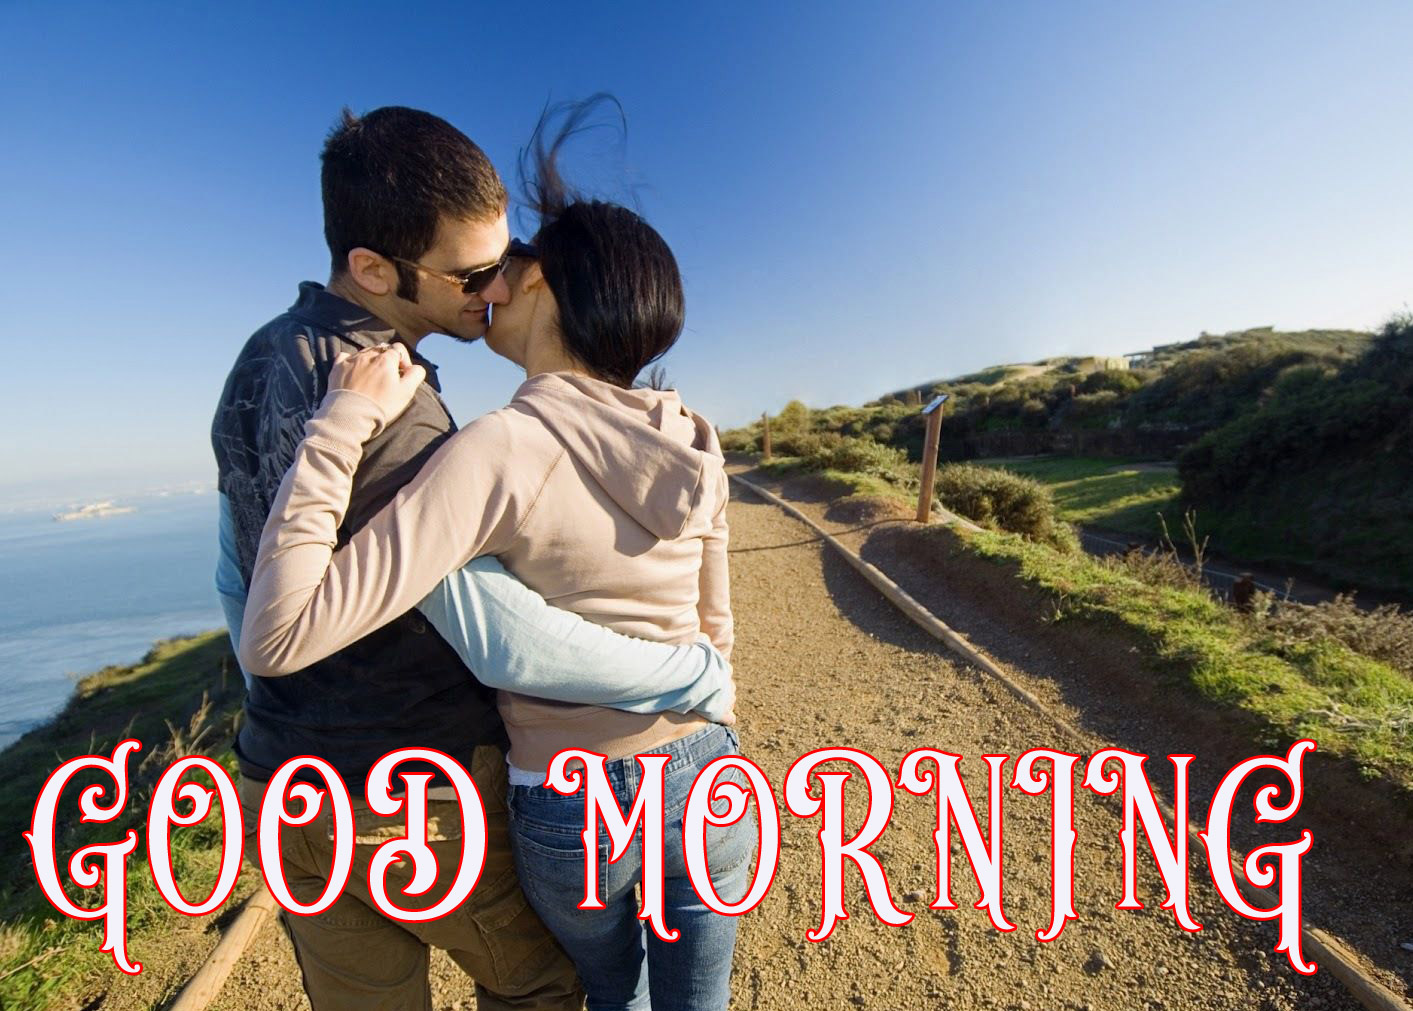 Good Morning Images Photo Pictures Pics Free Download